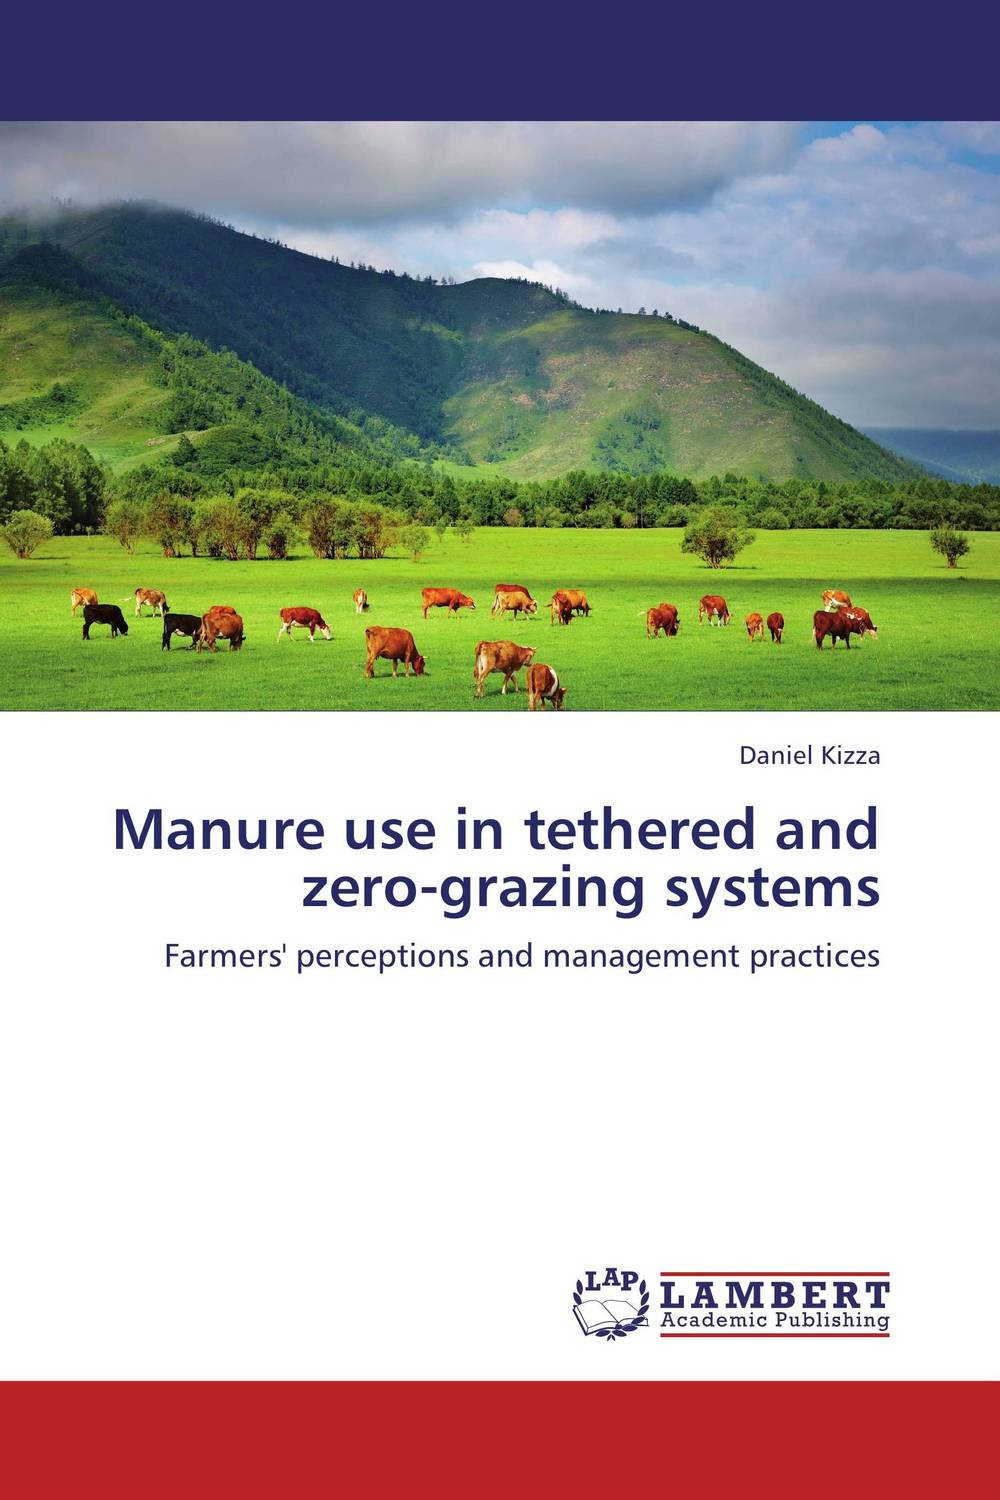 Manure use in tethered and zero-grazing systems claw disorders in dairy cows under smallholder zero grazing units